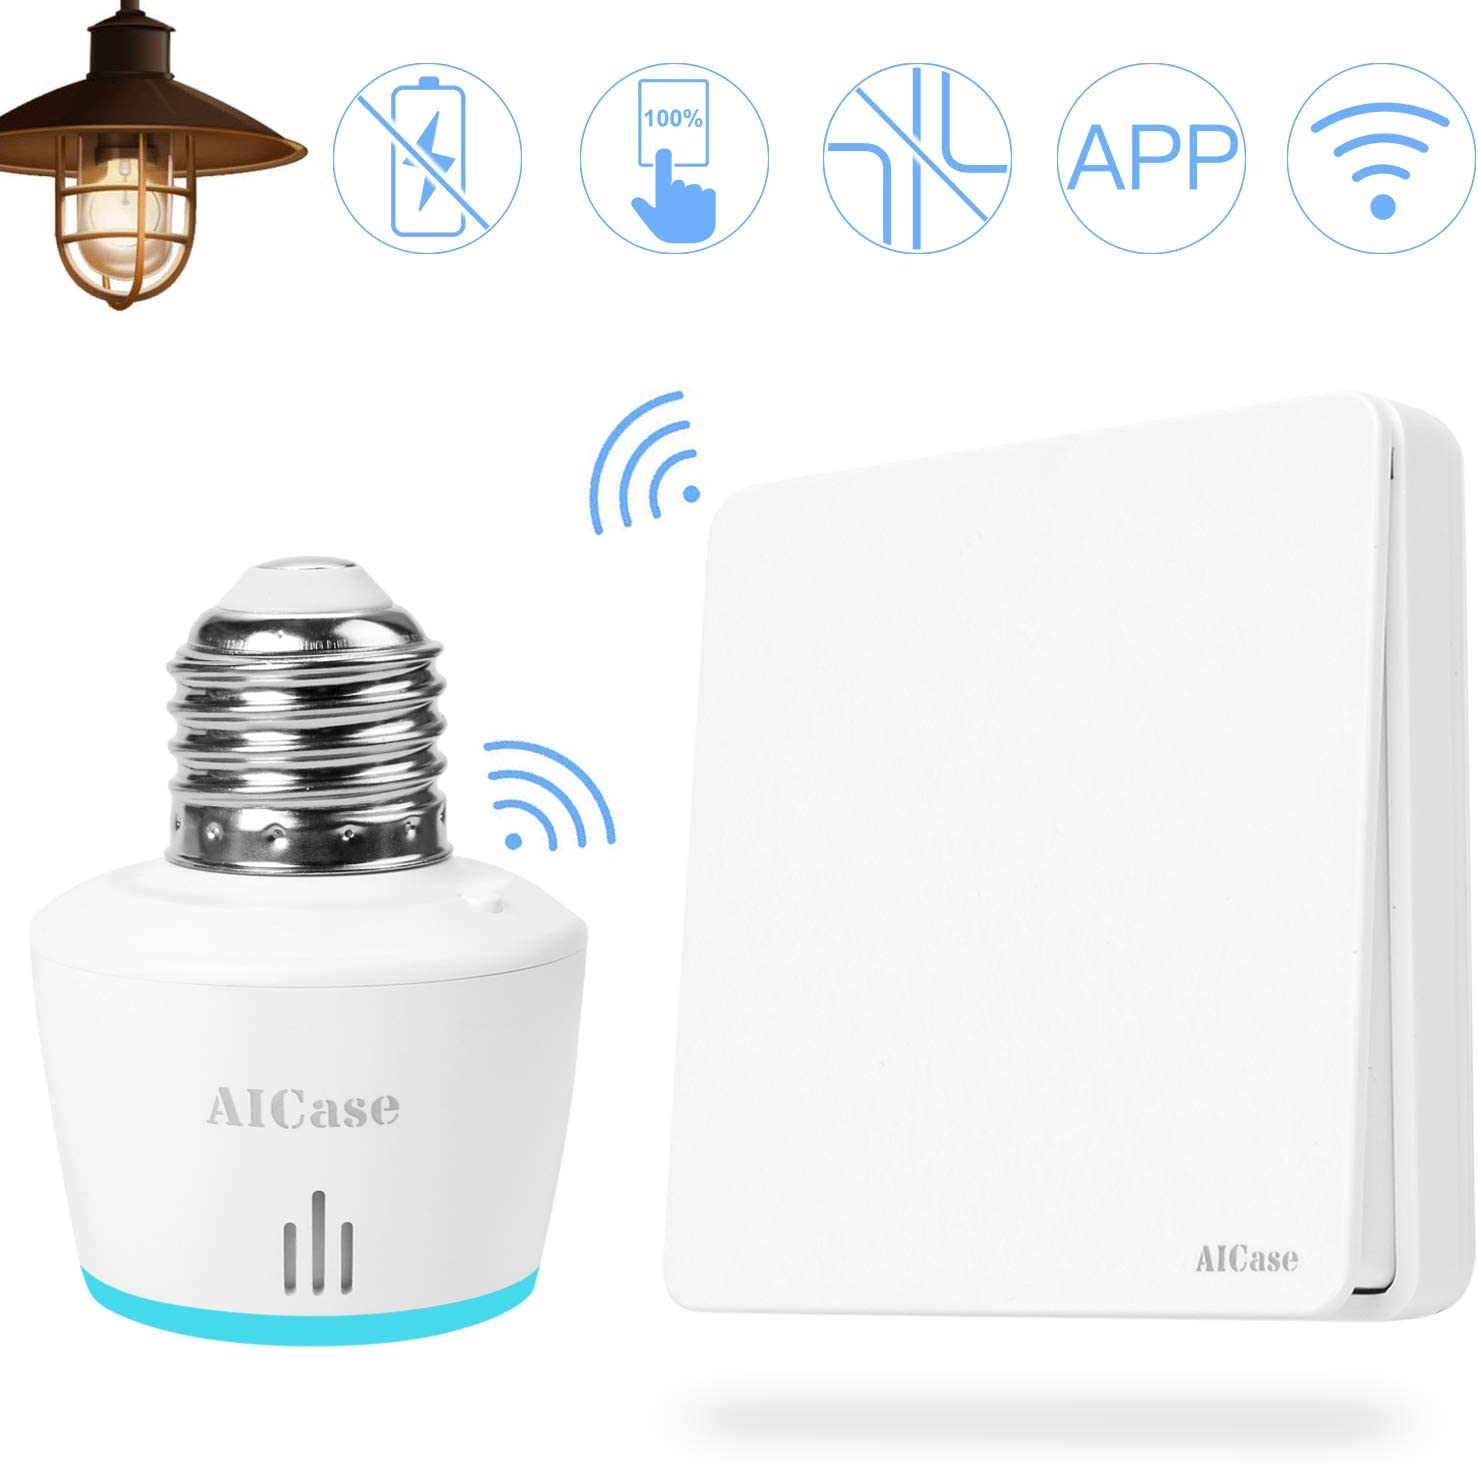 Smart WiFi E27 Light Socket with Wireless Smart Light Switch,AICase Intelligent WLAN Home Remote Control Light Lamp Bulb Holder Works with Alexa and Timing Function-White (with wifi)